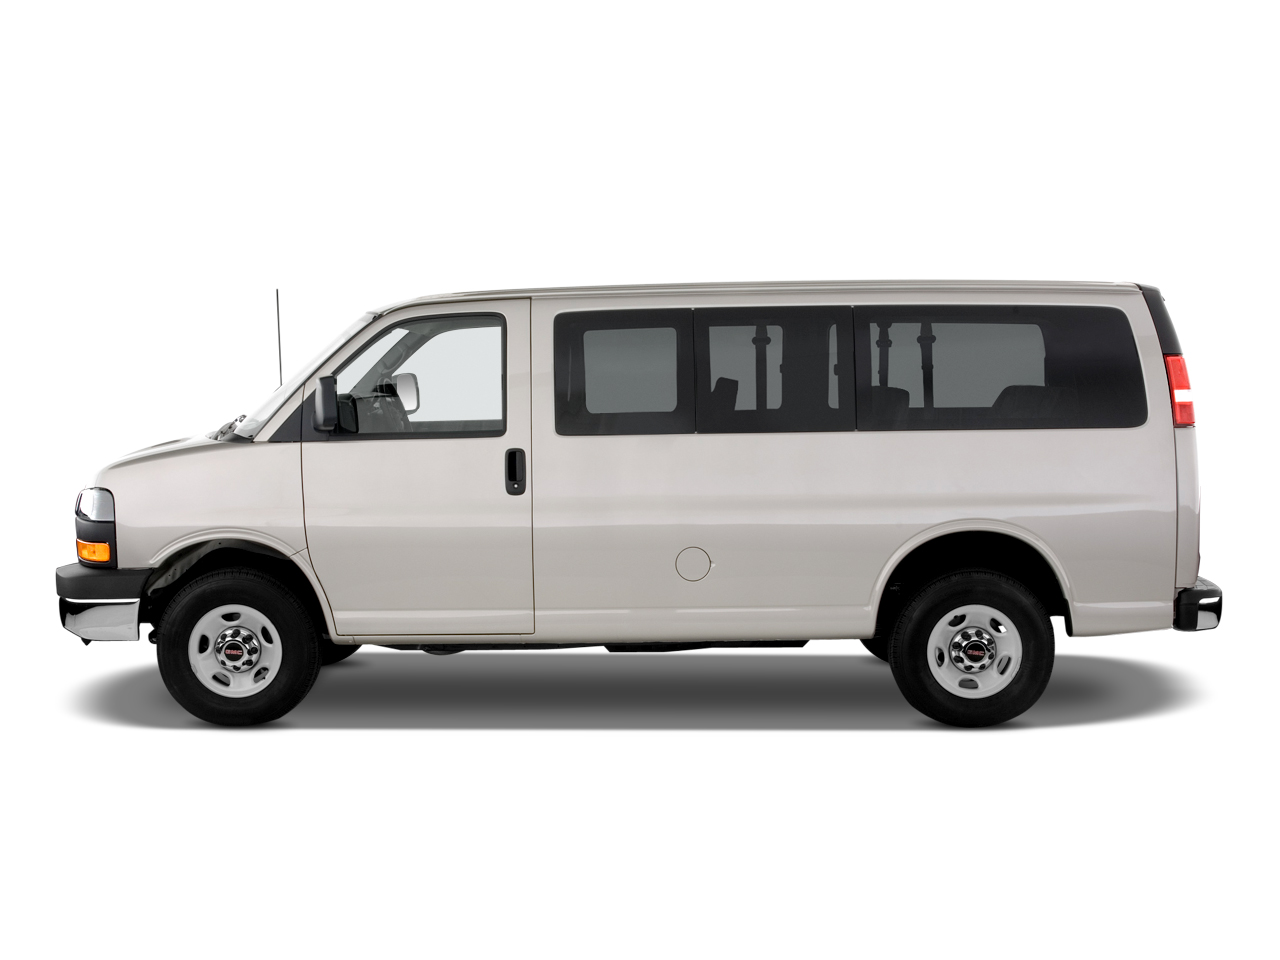 All Chevy 2003 chevy express van : Full-Size Vans: What You Need To Know To Arrive Safely